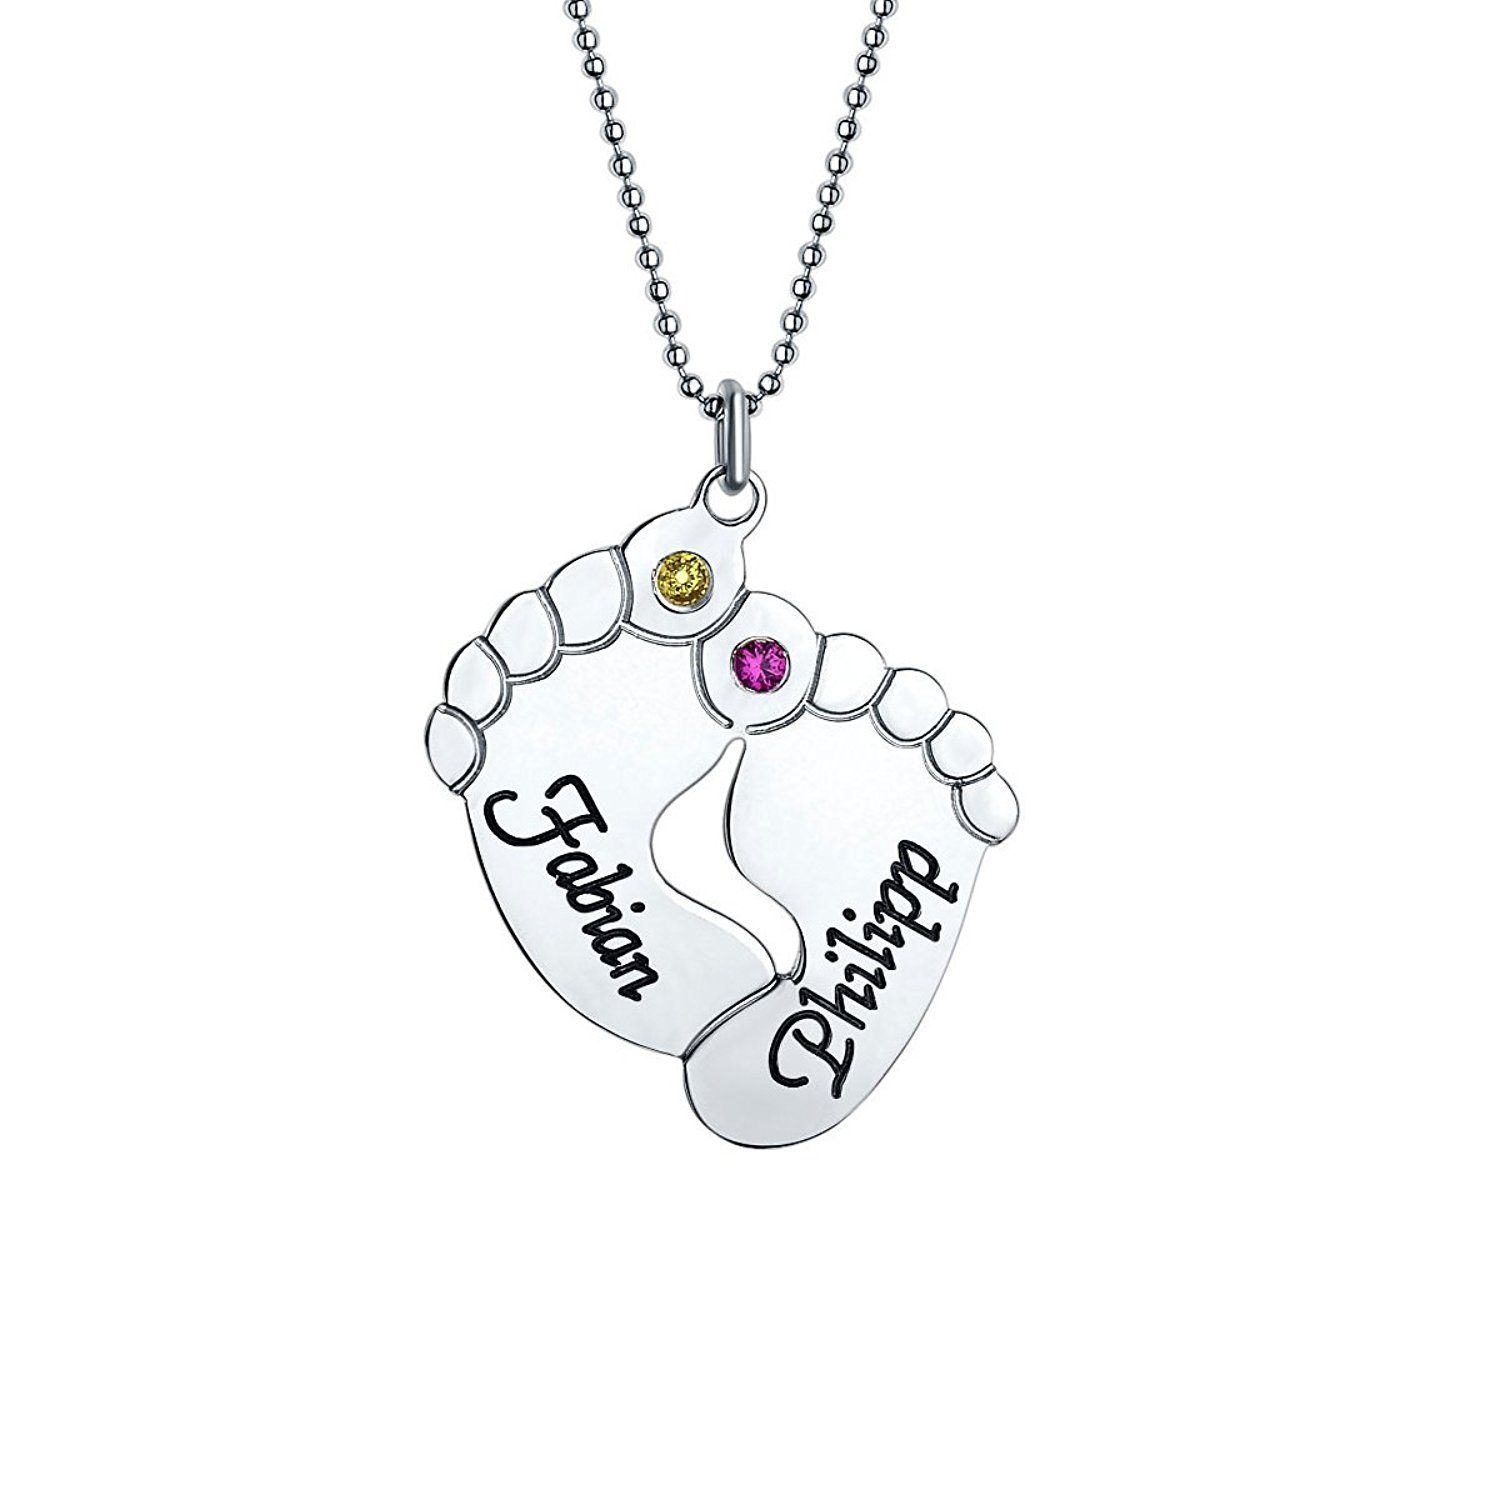 Mother Jewellery - Engraved Baby Feet Pendant Necklace with Personalised Birthstone - Custom Made with Any Name! LBruSswteQ